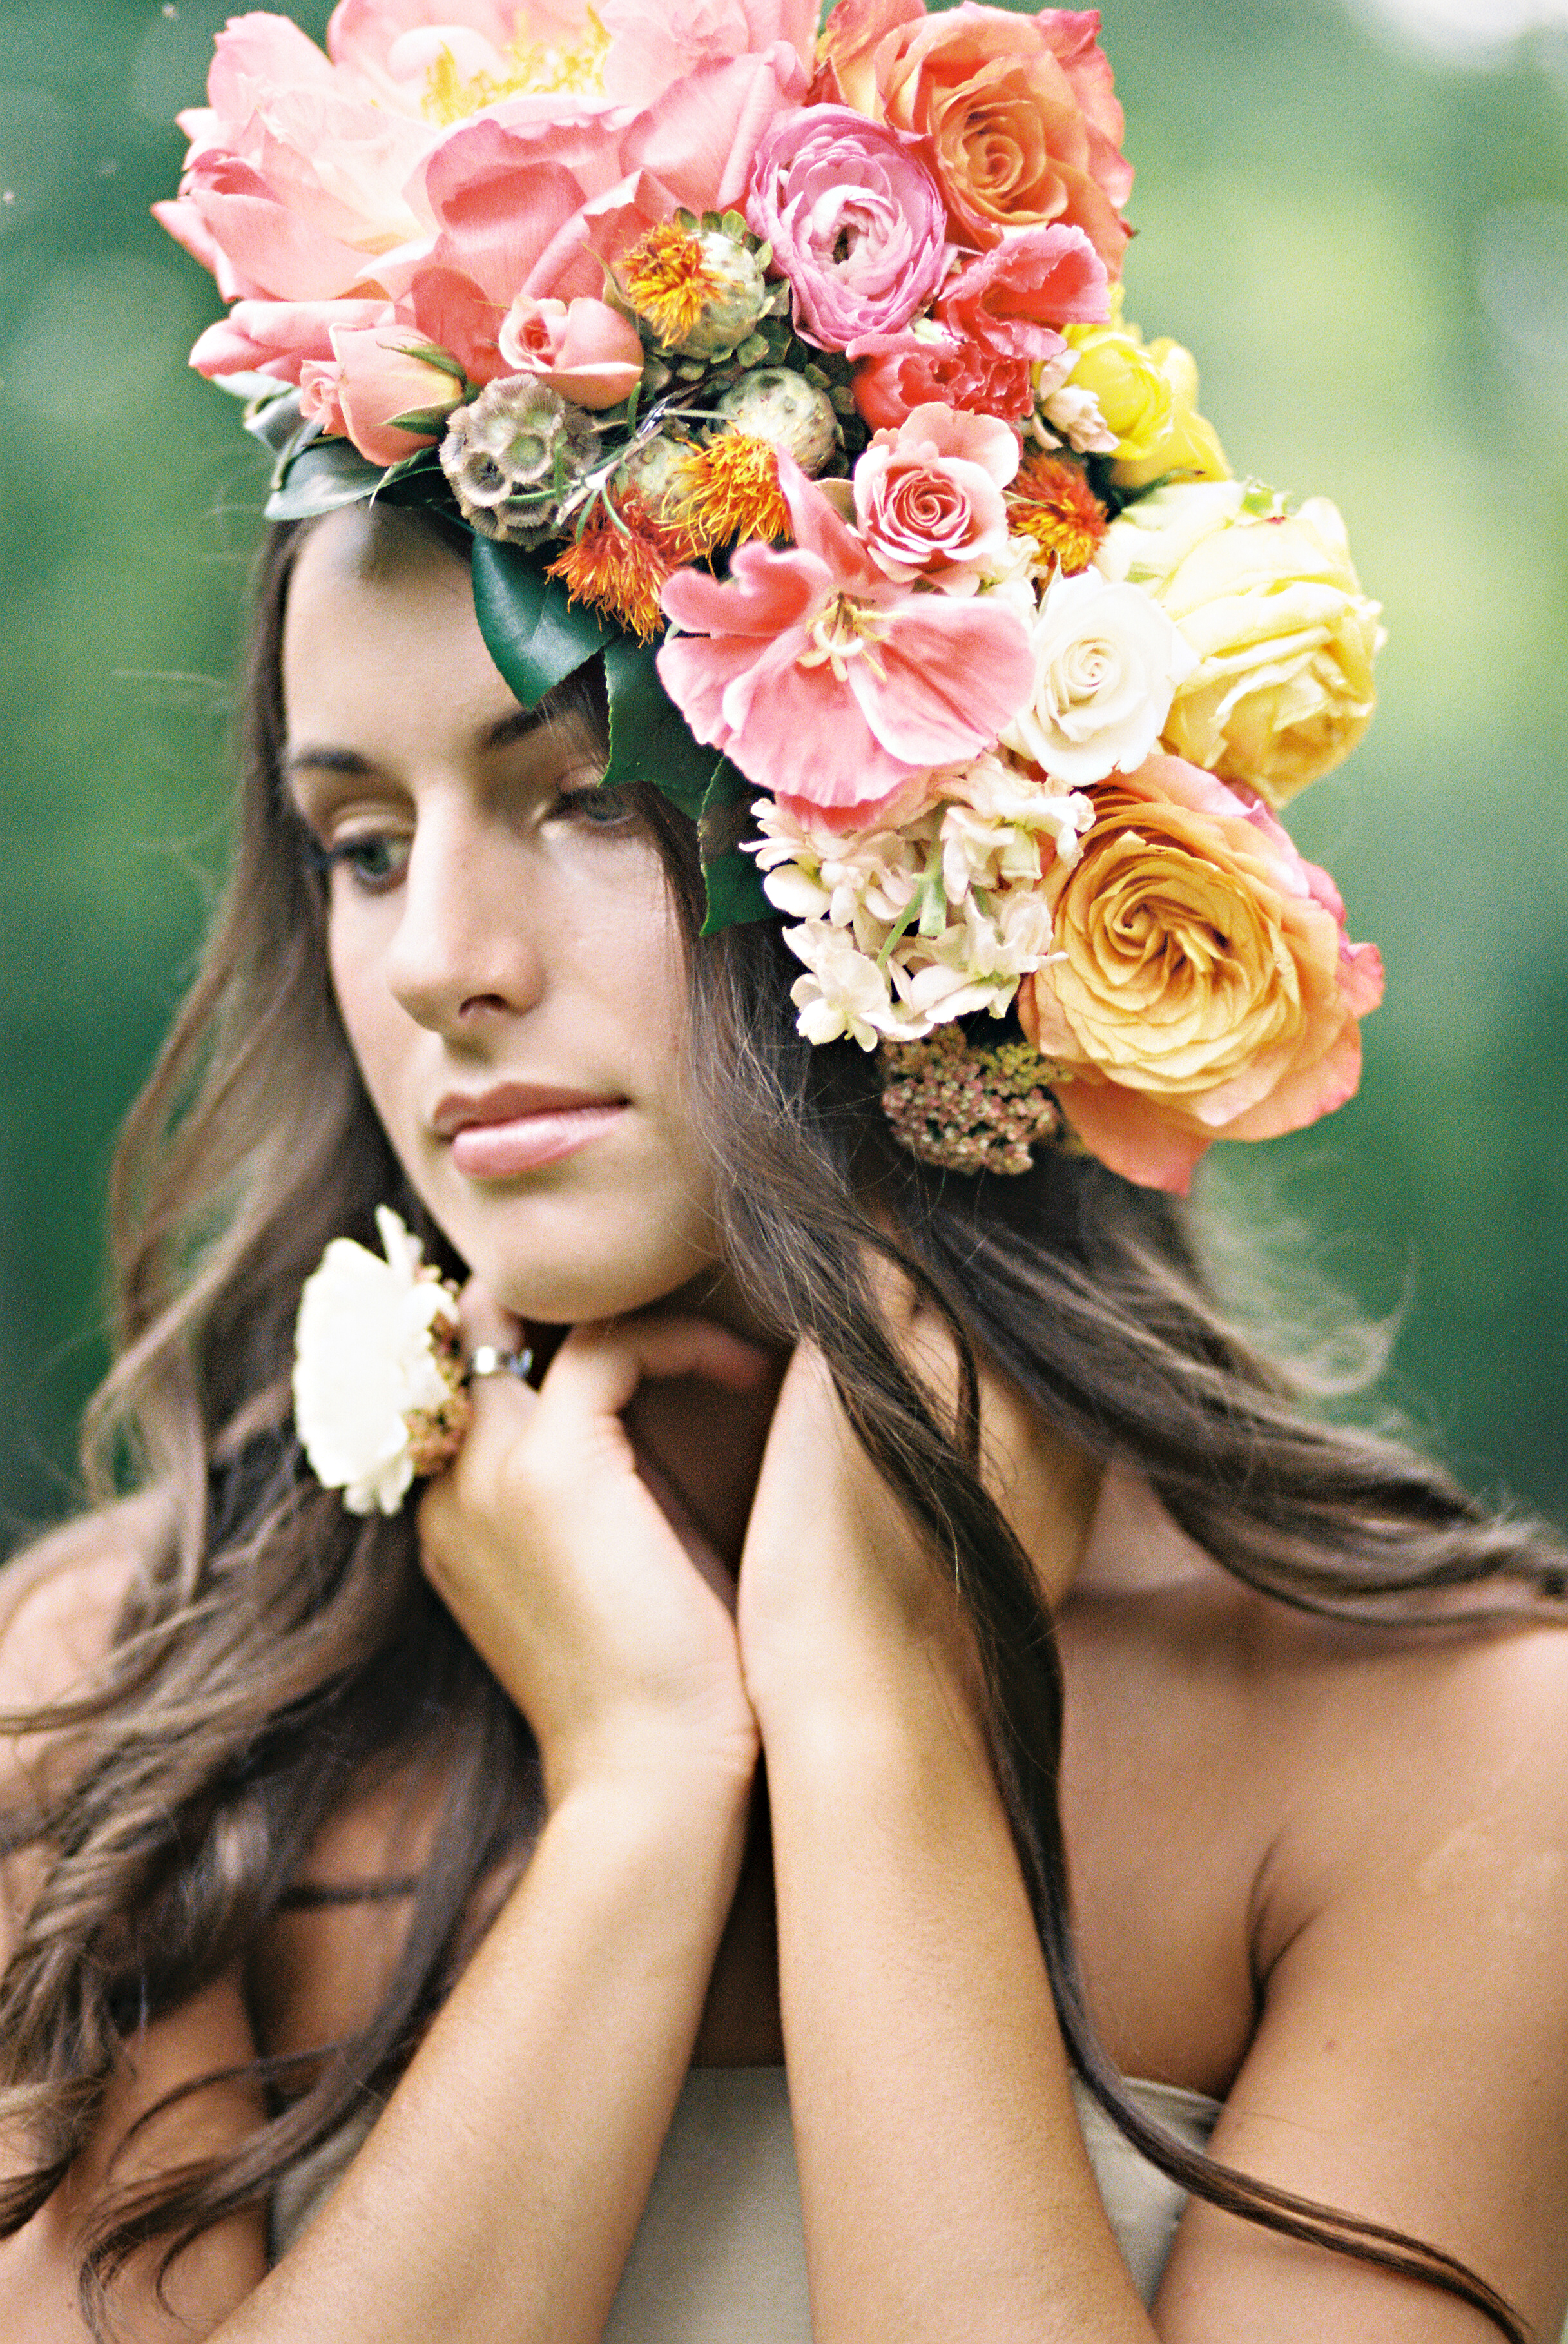 Flower crown archives the glitter life the glitter life flower crown izmirmasajfo